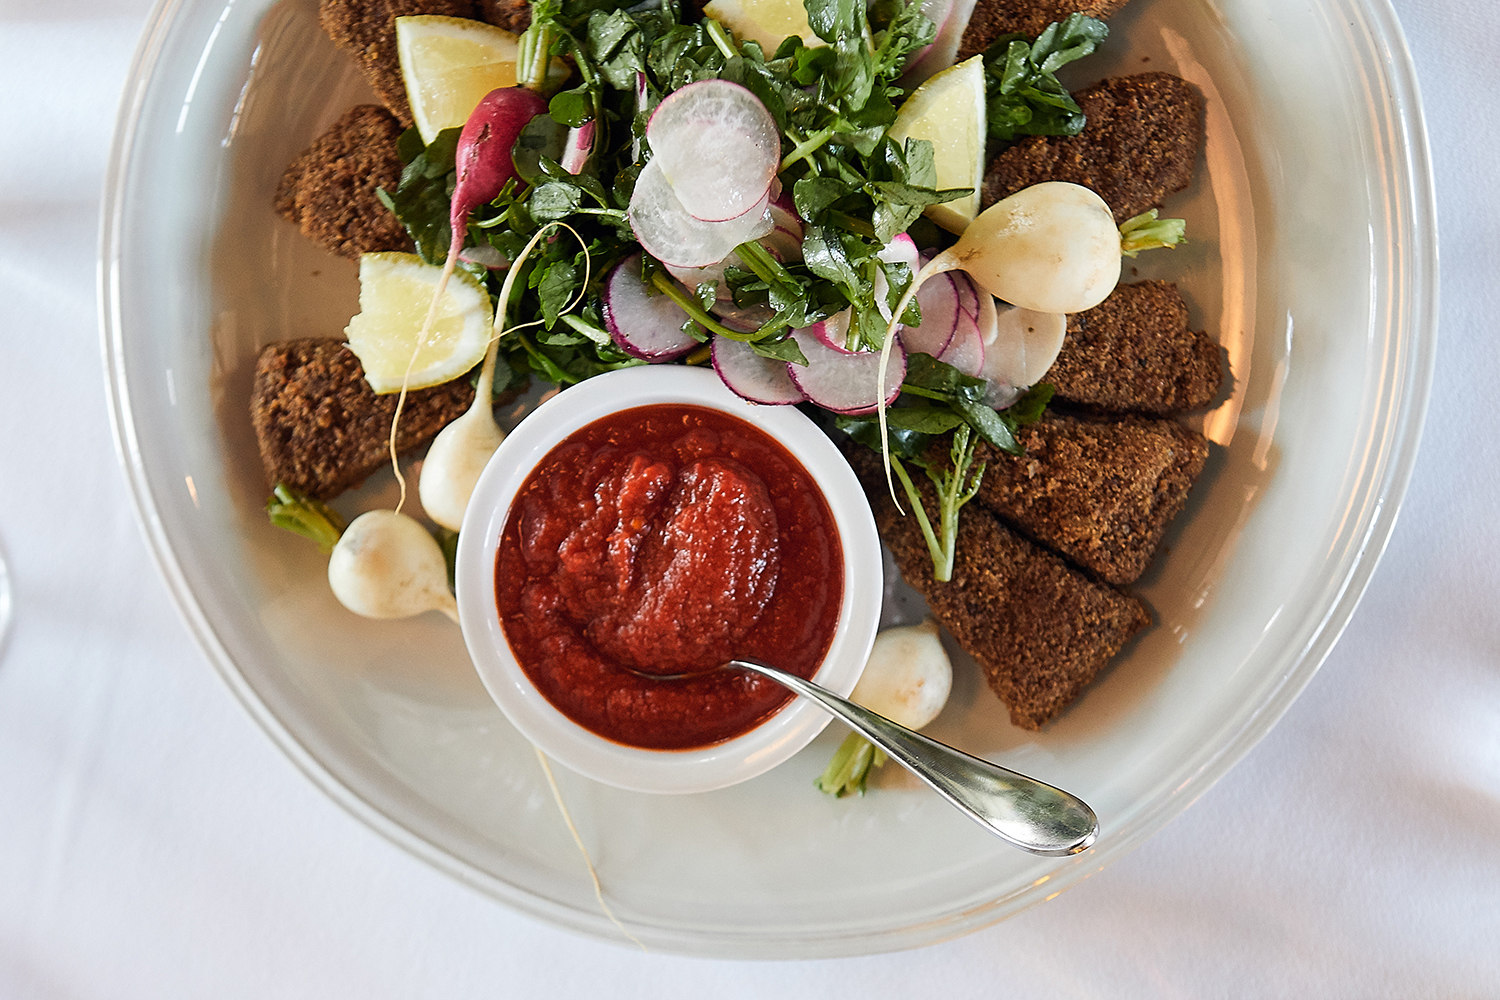 Breaded goat breast cutlets, watercress salad, and spicy tomato sauce // Photo by Wing Ta